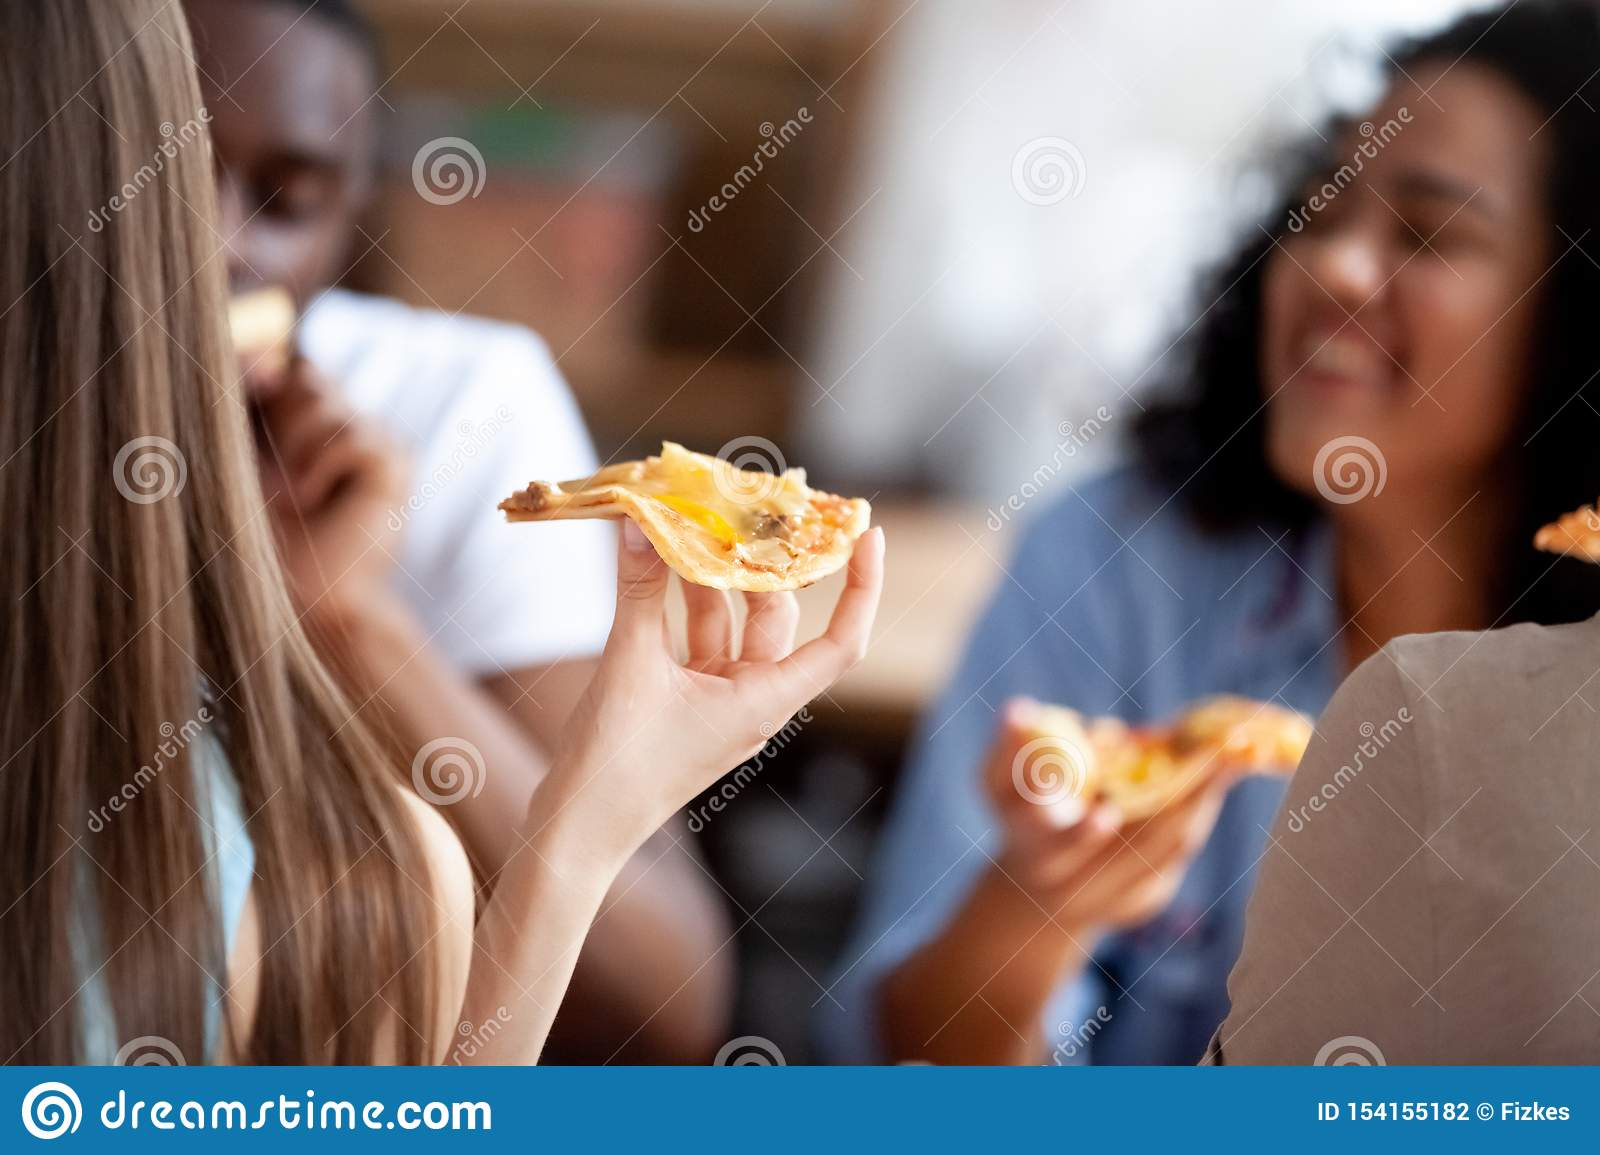 Close up image of young woman holding slice of pizza.